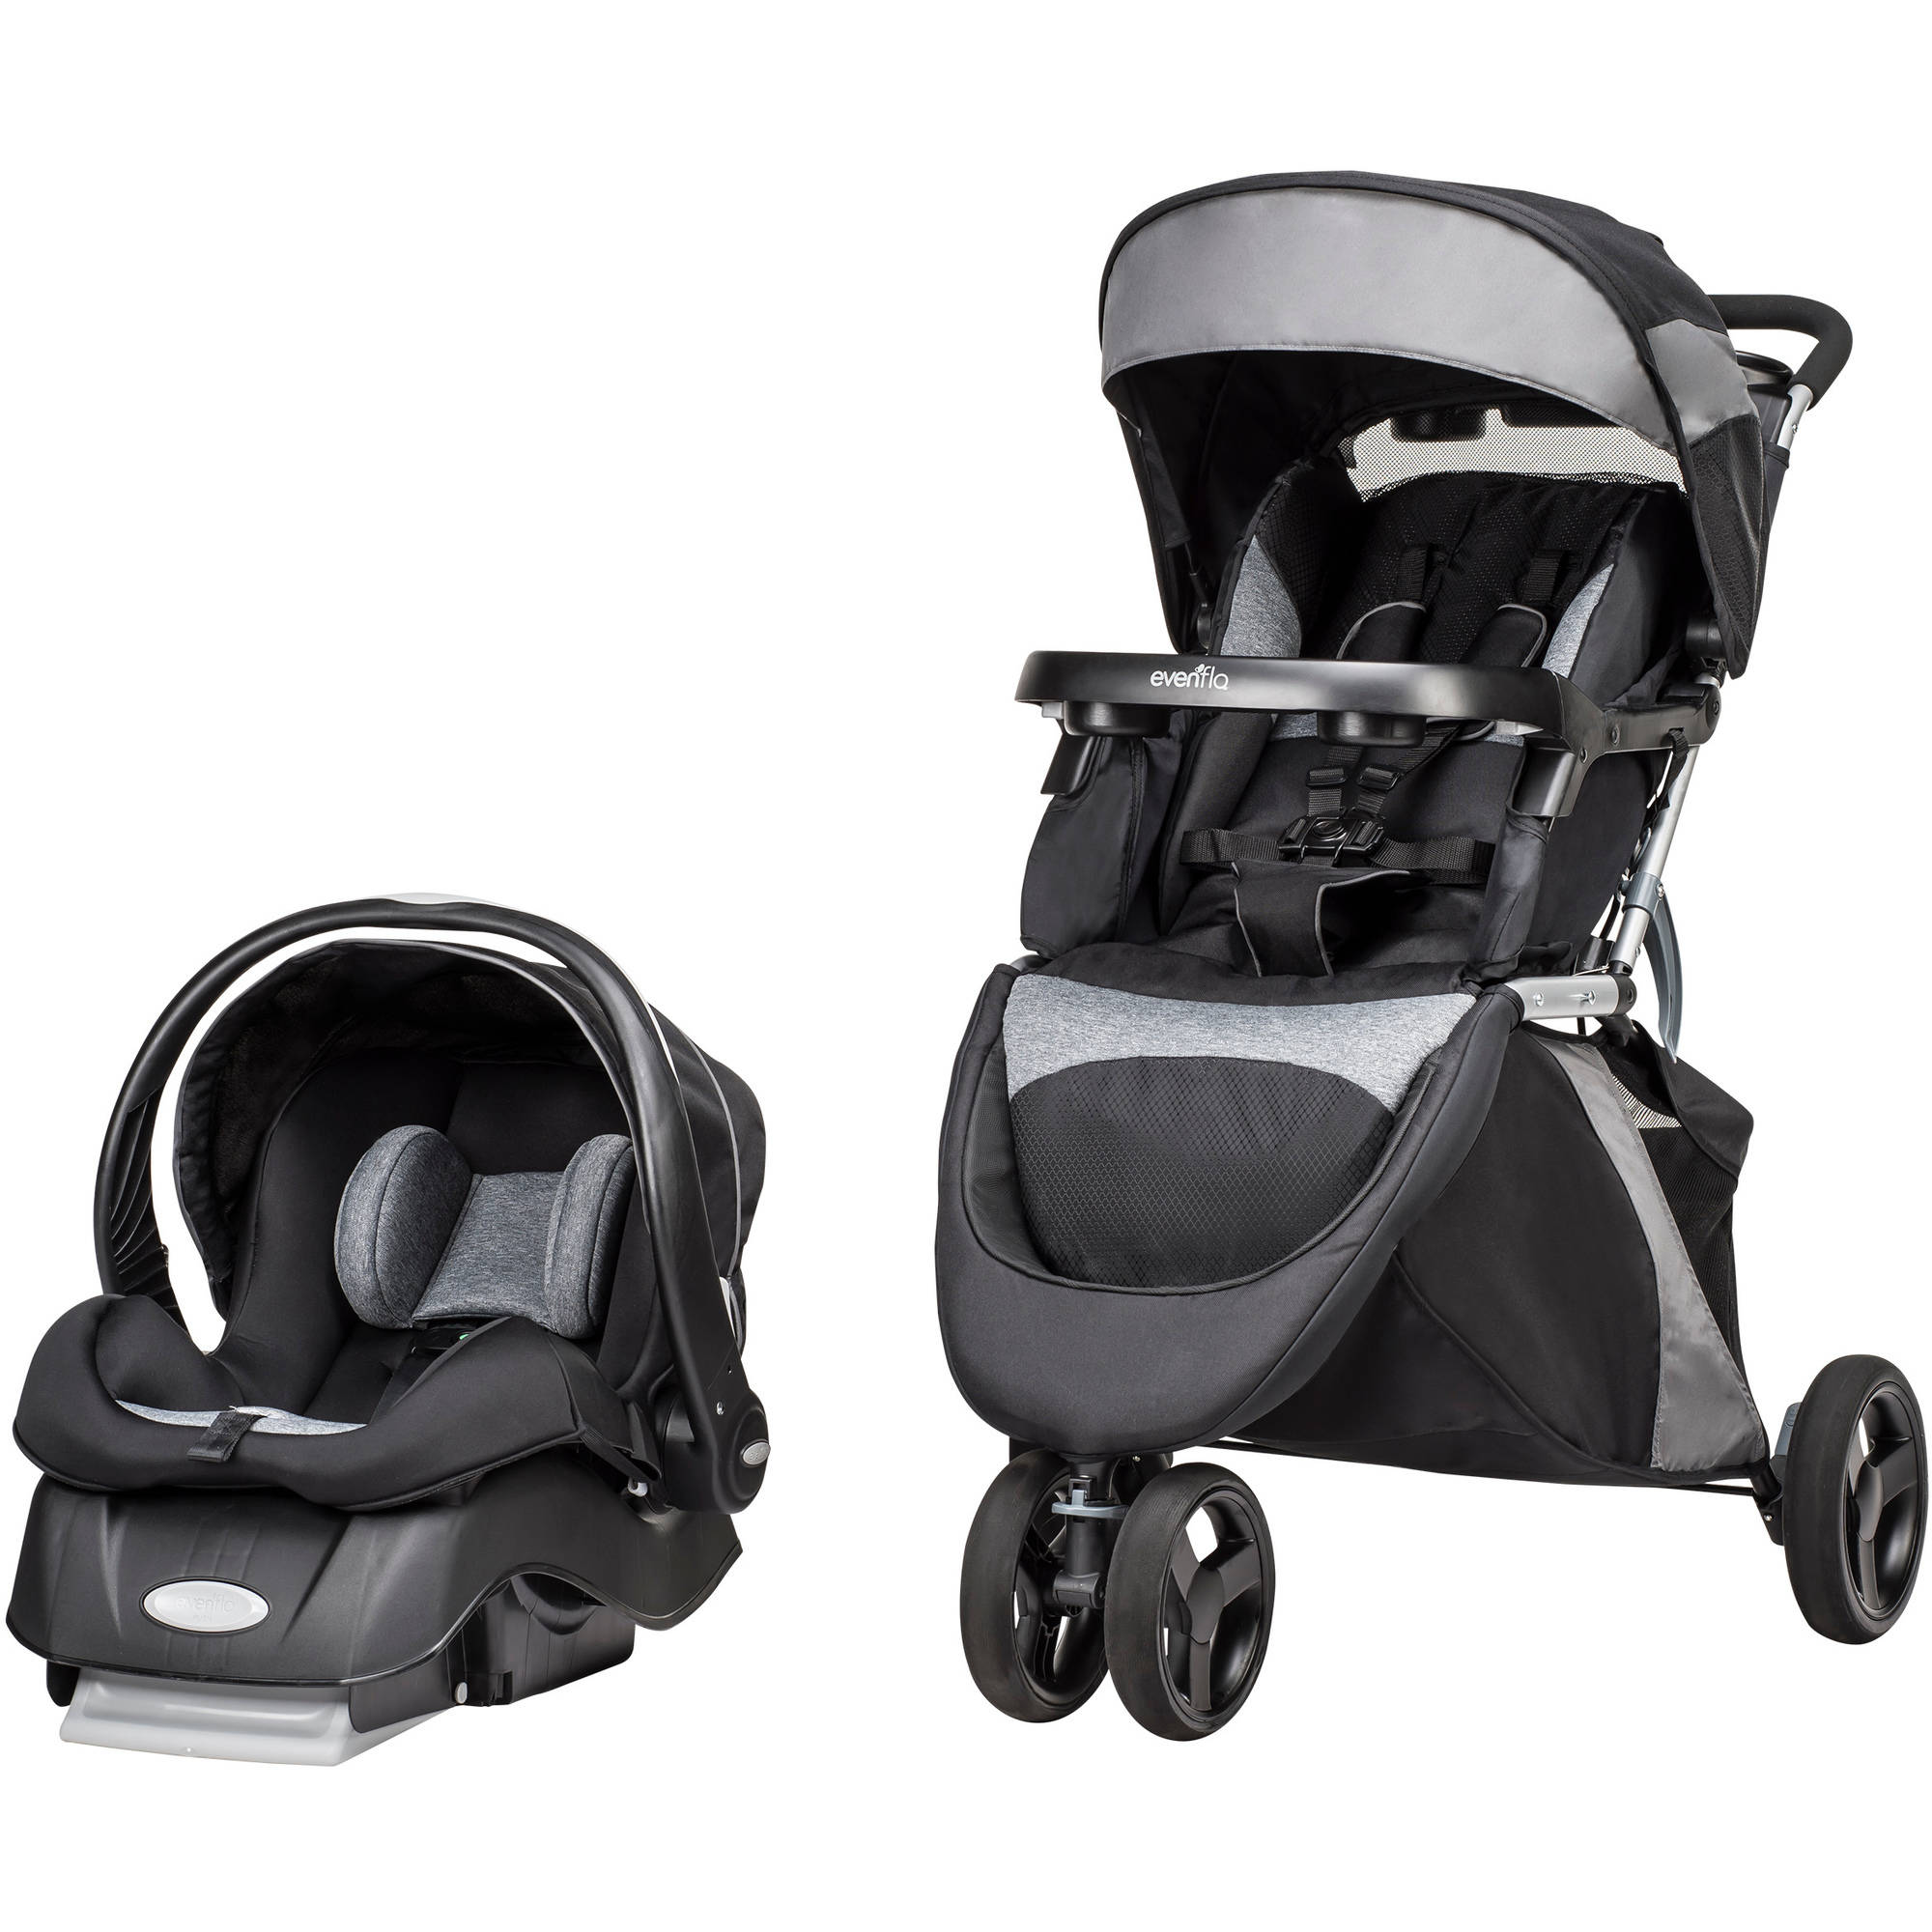 Evenflo Advanced SensorSafe Epic Travel System